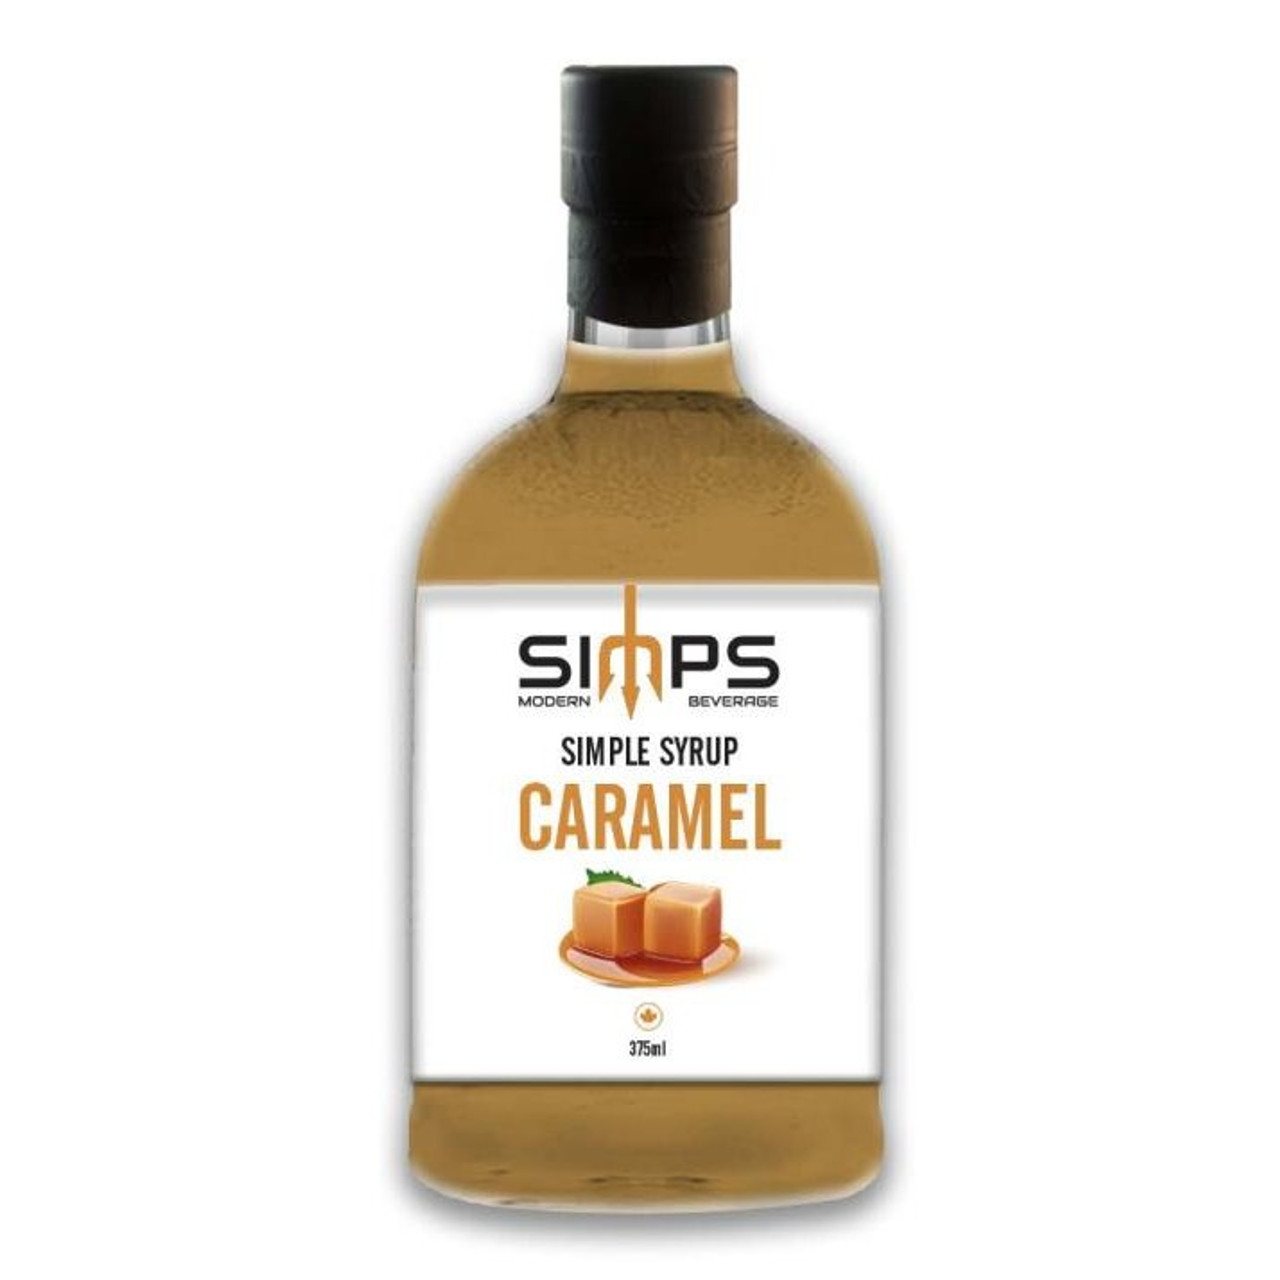 SIMPS SIMPLE SYRUP - CARAMEL